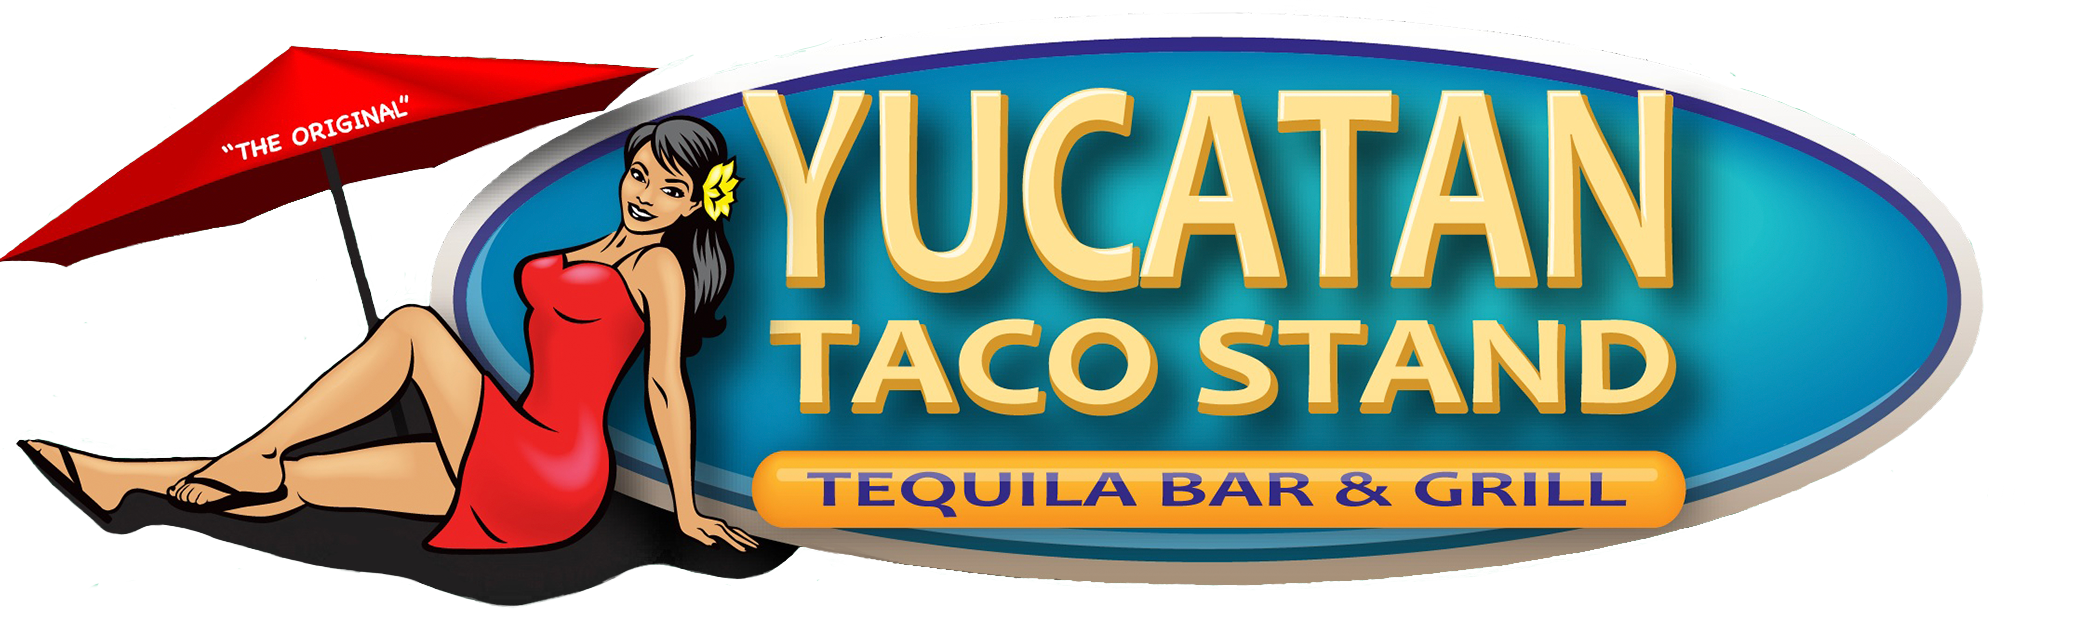 Yucatan Taco Stand Tequila Bar and Grill Home